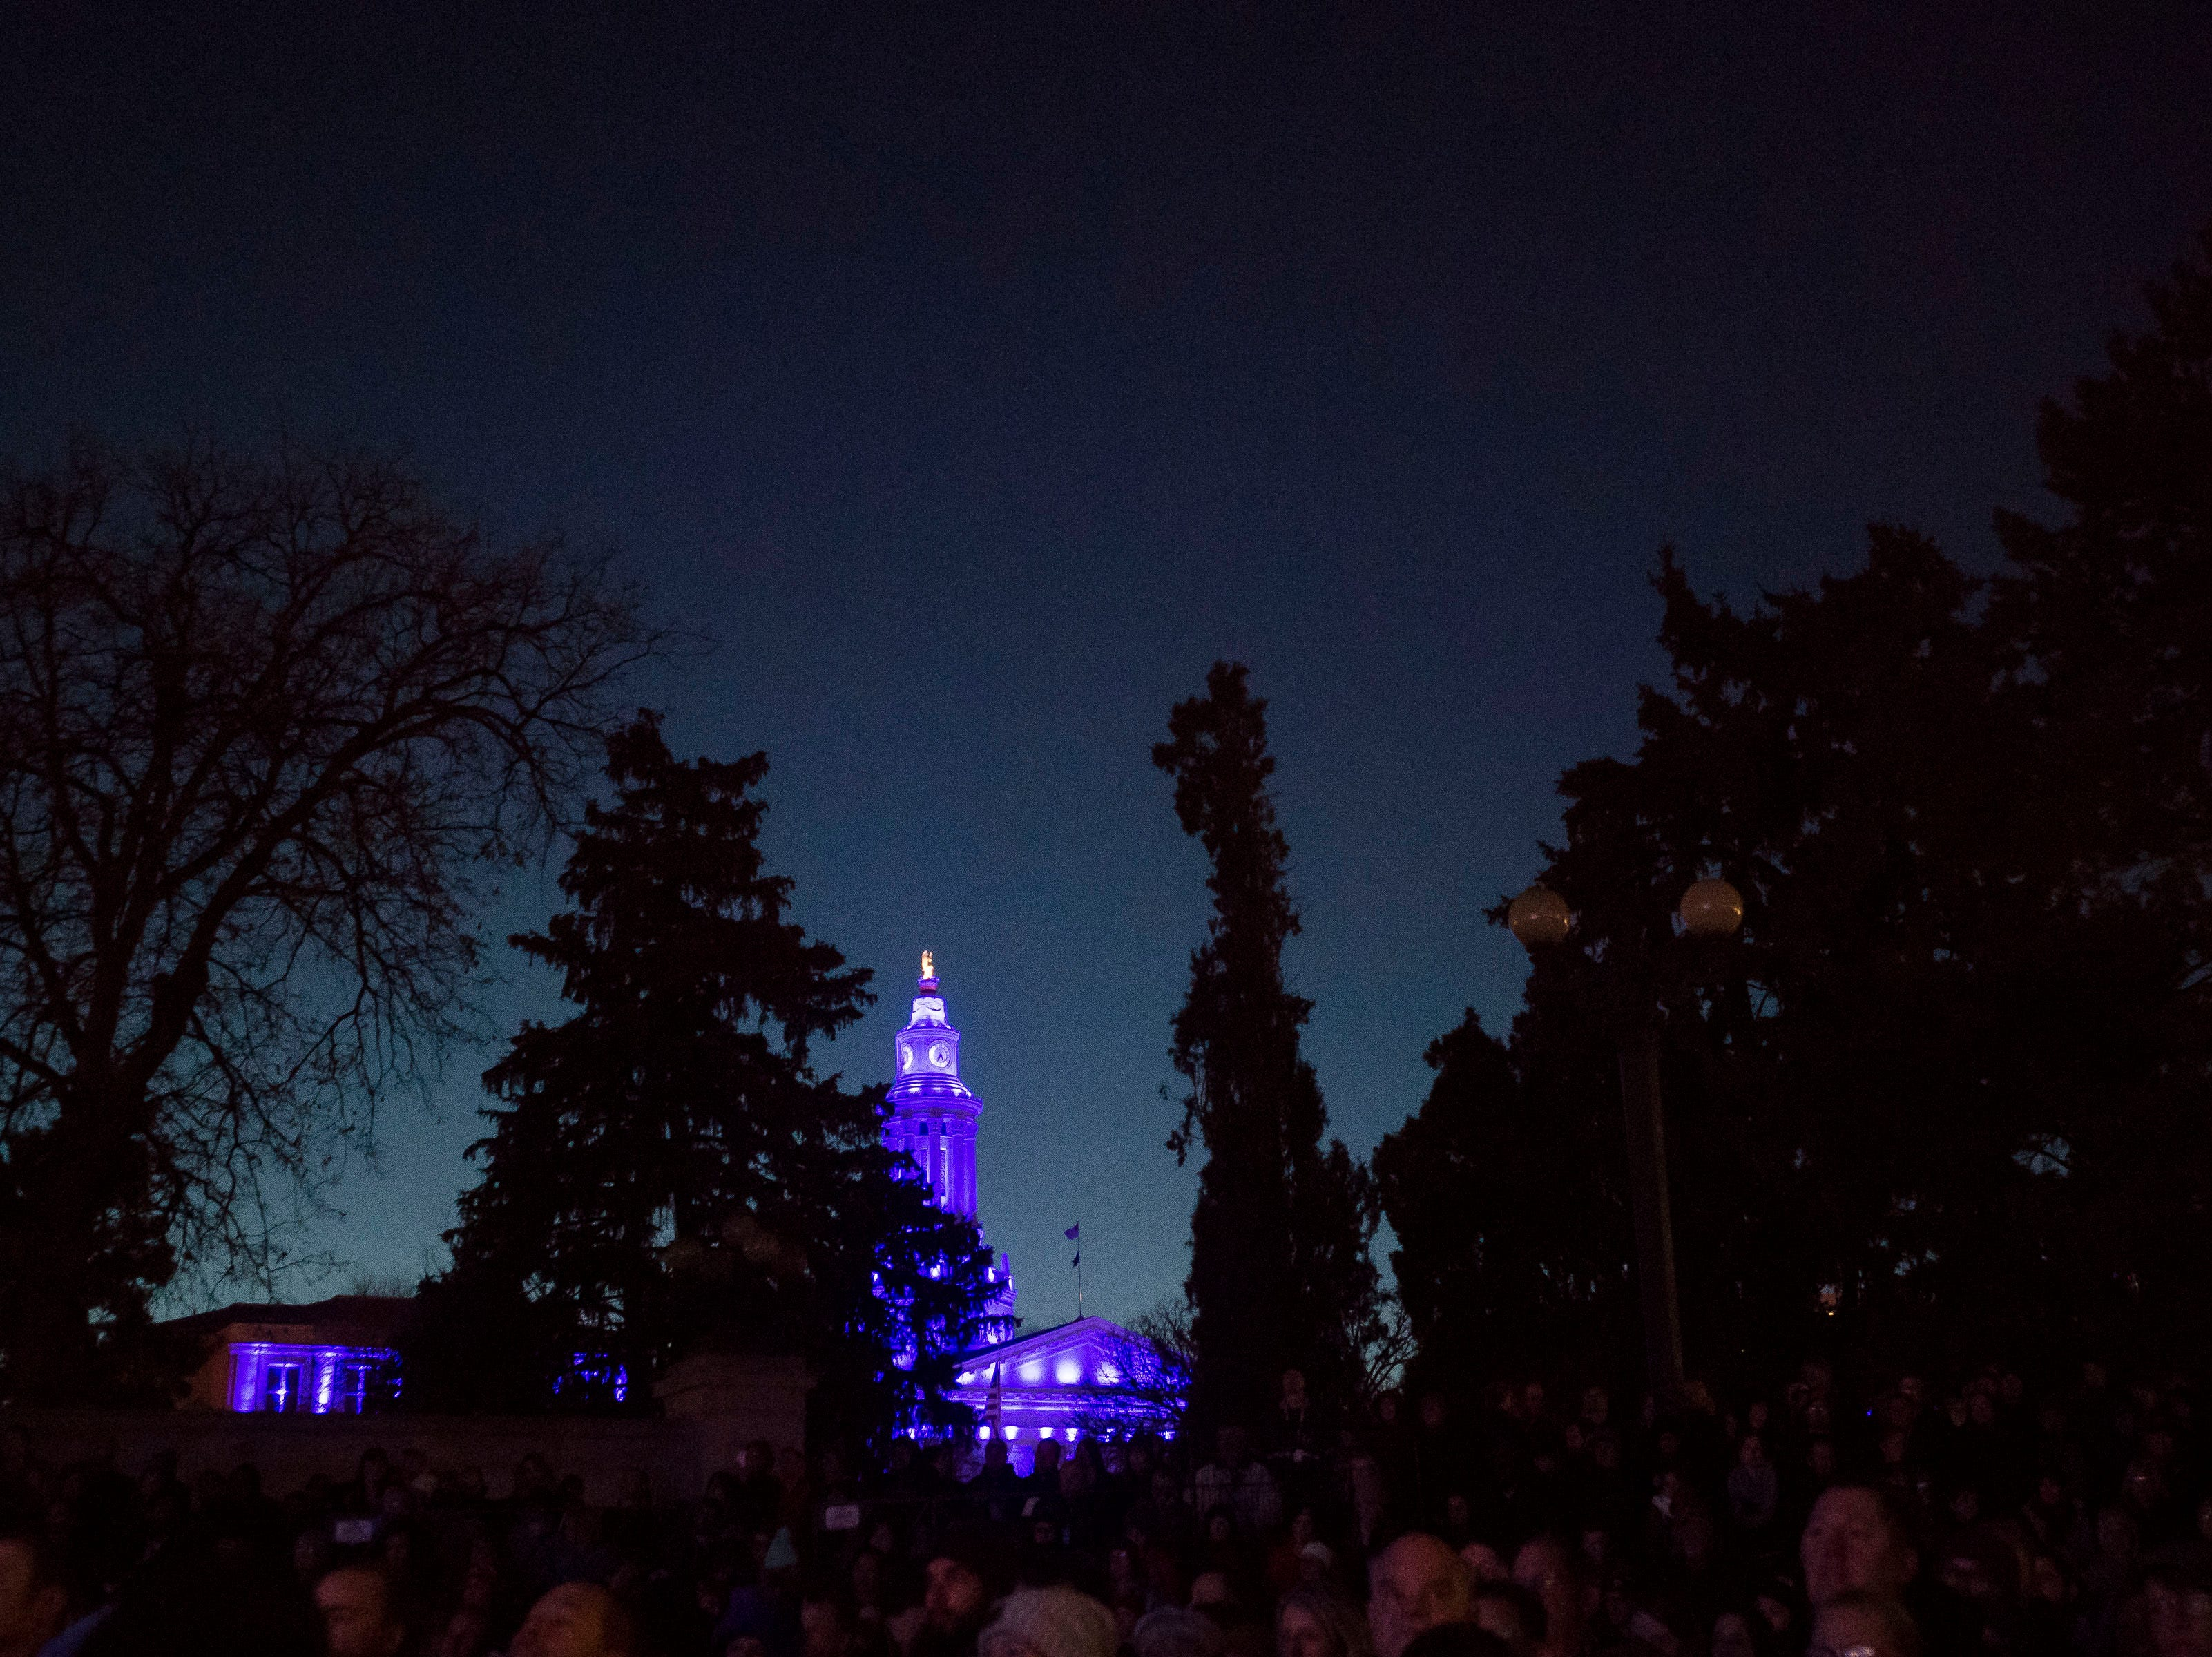 The City and County Building is lit up during former Colorado governor John Hickenlooper's presidential campaign kick-off rally on Thursday, March 7, 2019, at the Greek Ampitheatre in Civic Center Park in Denver, Colo.